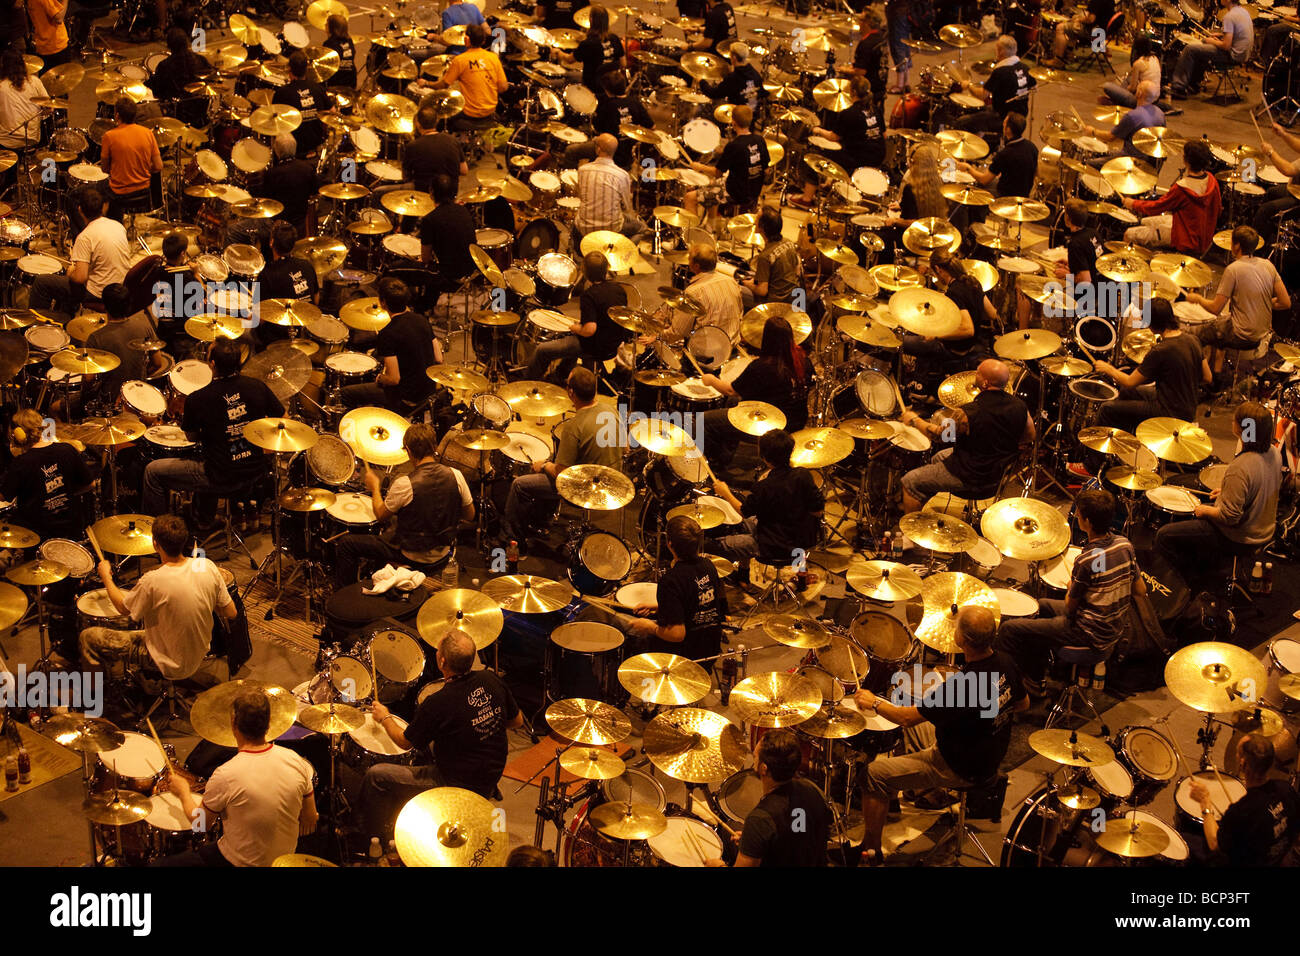 Some of the 600 drummers at the National Indoor Arena in Birmingham, who attempted to break the world drumming record - Stock Image